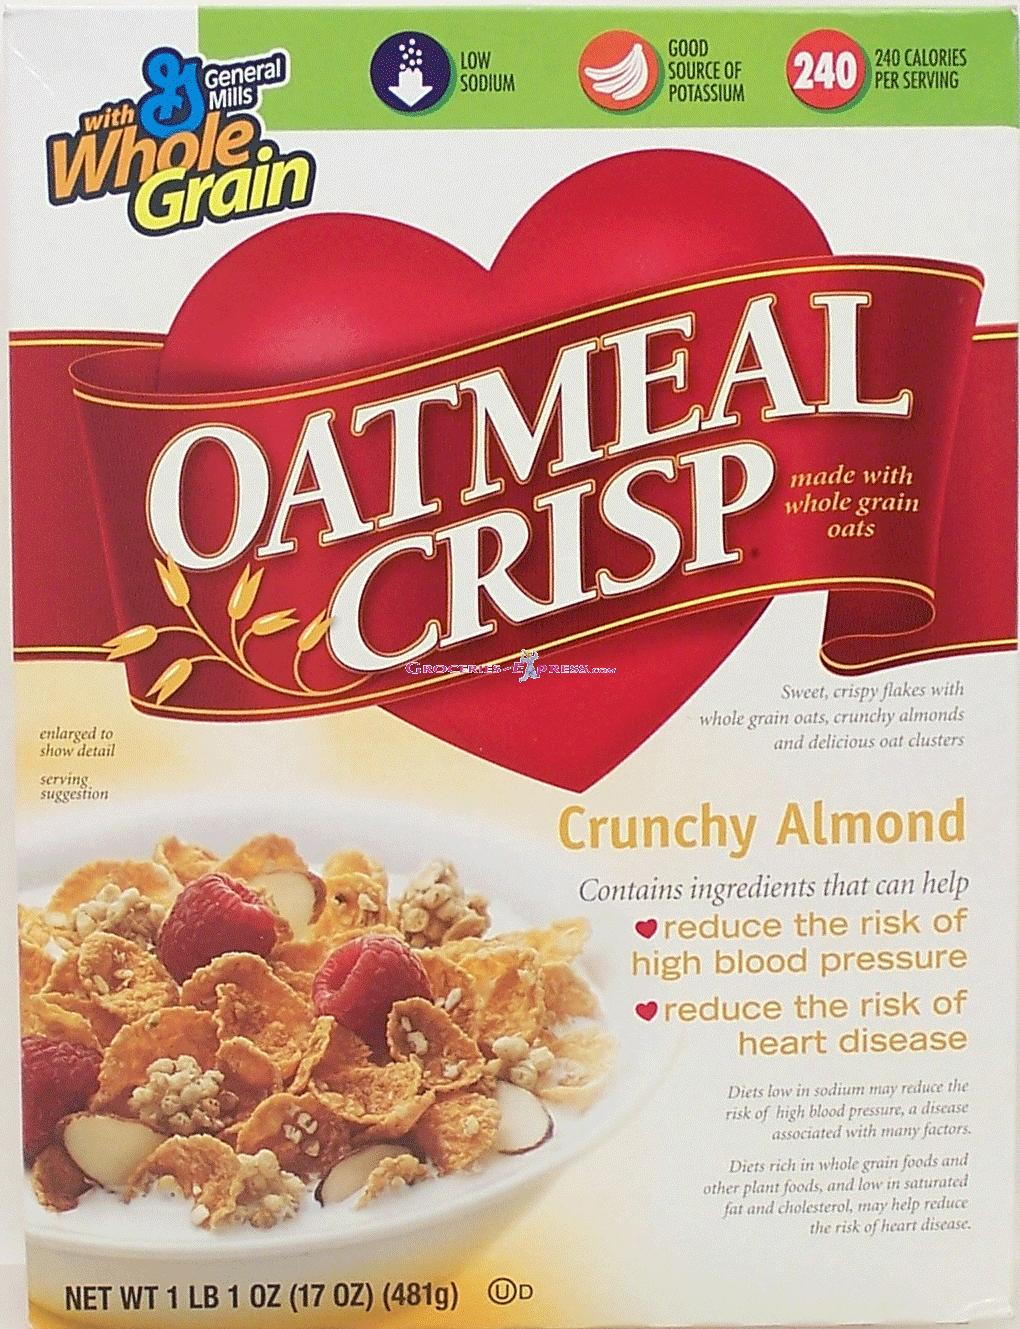 The healthiest cereal for adults